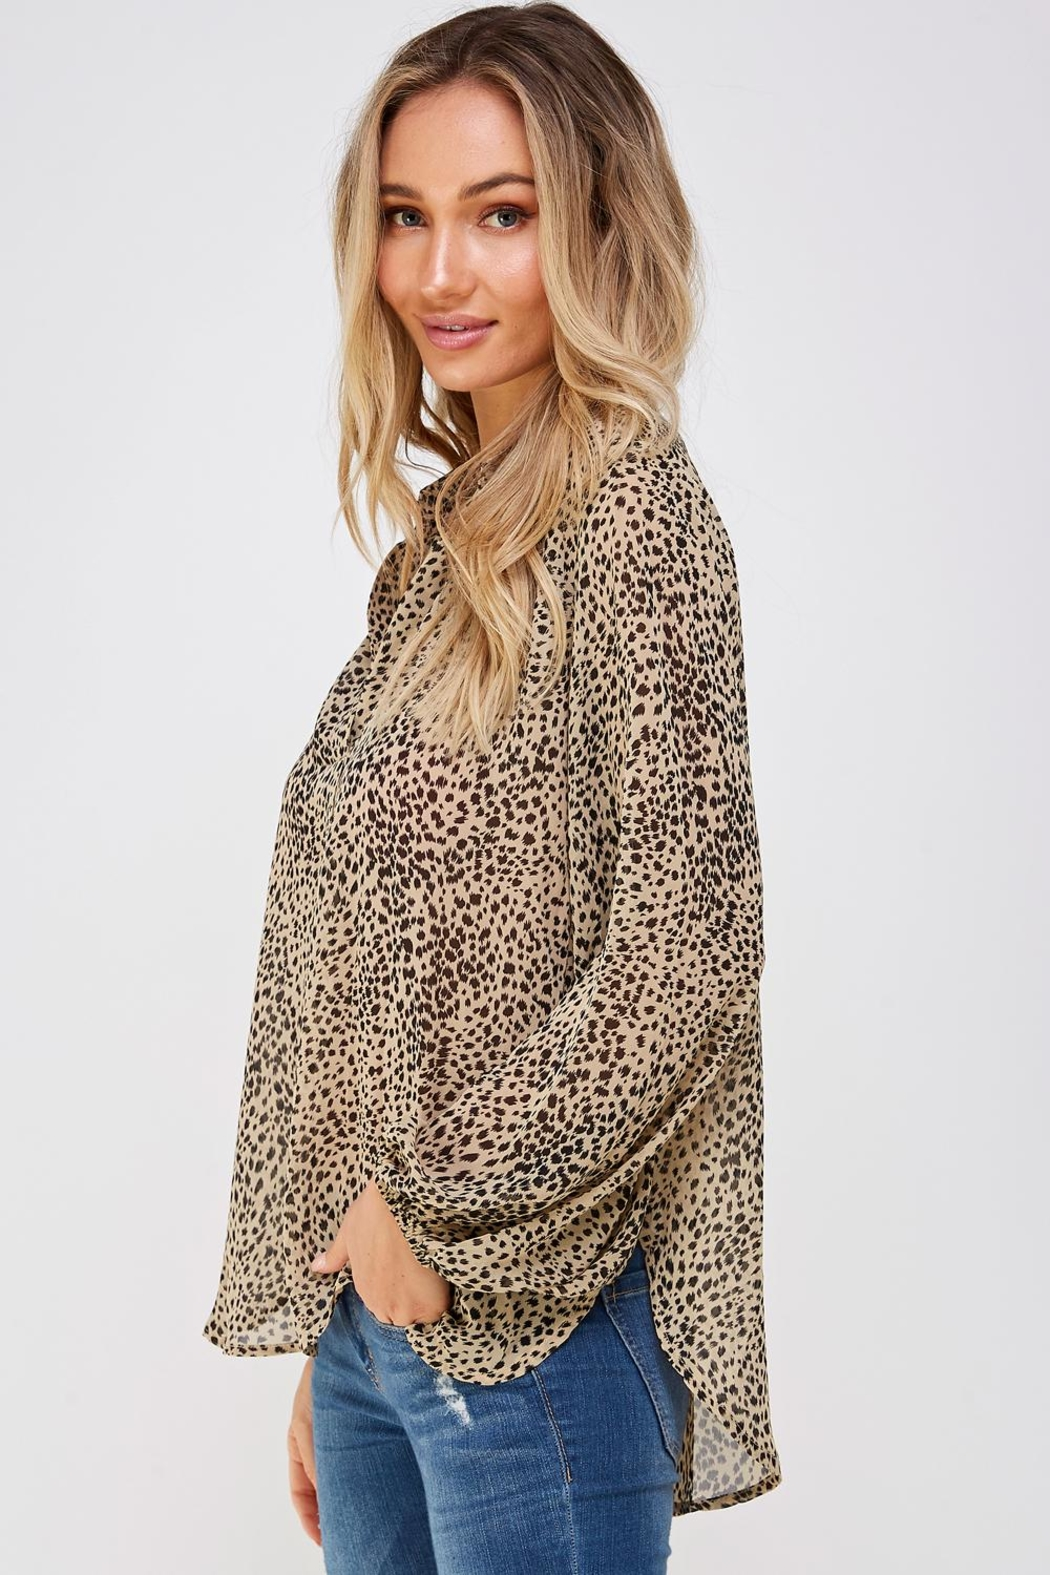 AAKAA Leopard Print Blouse - Front Full Image